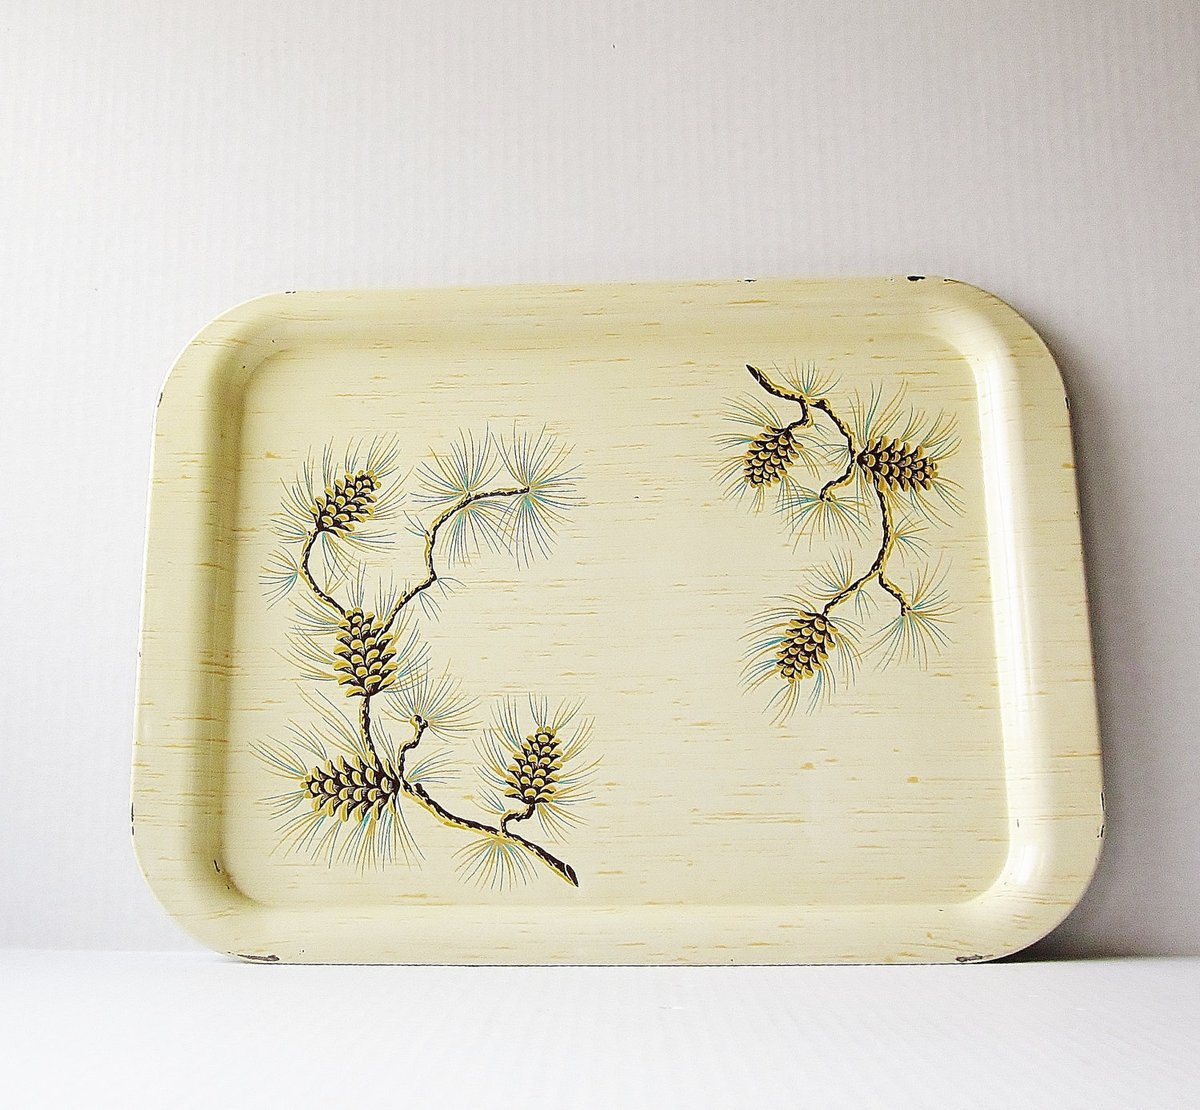 Robin Hahn On Twitter Faux Birch Bark Pinecone Metal Serving Tray Vintage Tv Tray Large Serving Tray Mid Century 1950s 1960s Kitsch Winter Home Decor Https T Co Ayxilngxez Beige Yellow Metal Vintagetray Metaltray Servingtray